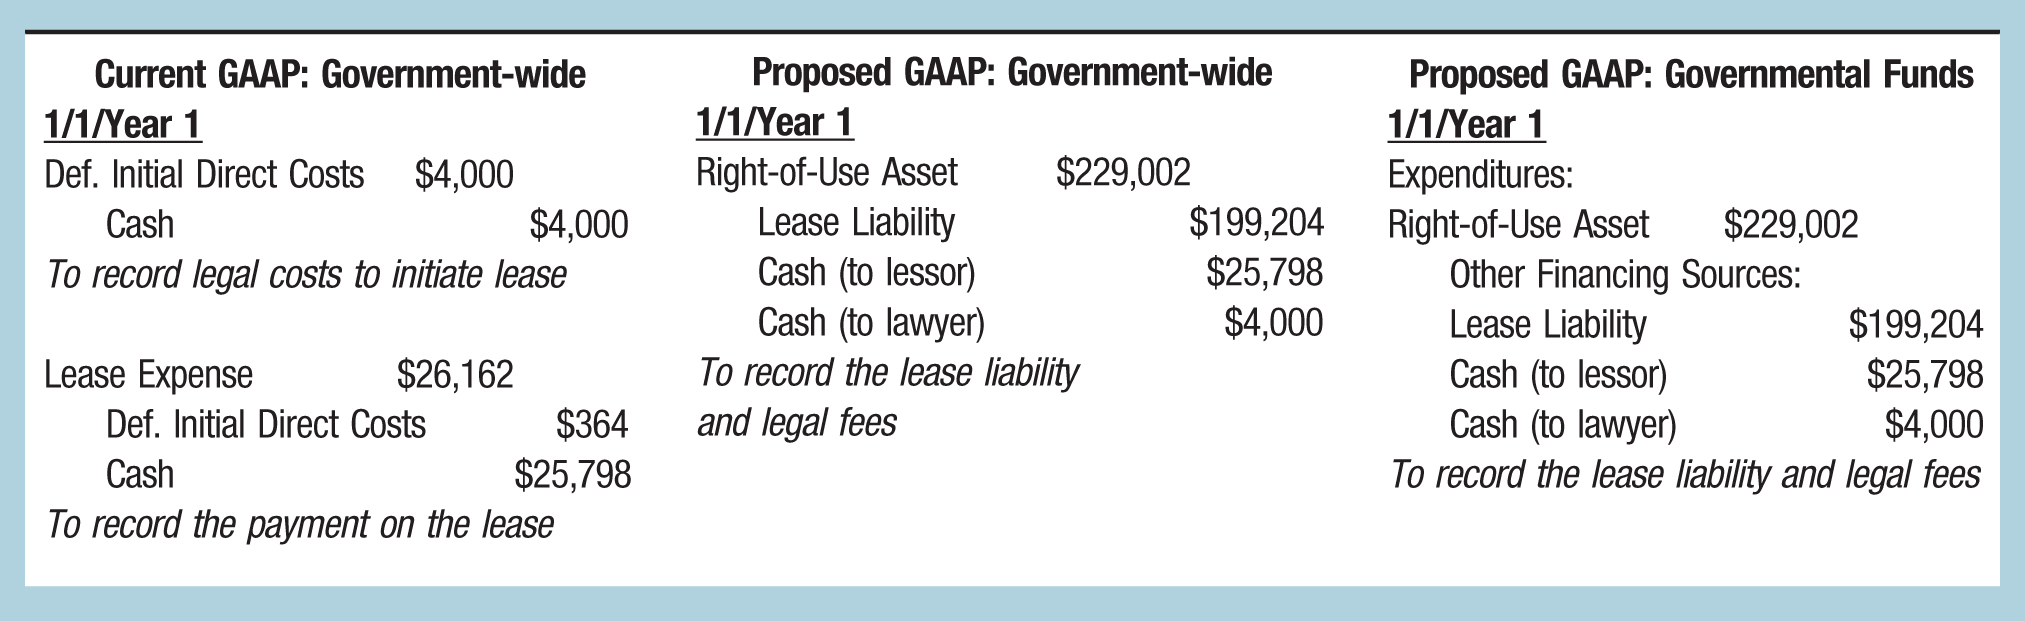 Current GAAP: Government-wide; Proposed GAAP: Government-wide; Proposed GAAP: Governmental Funds 1/1/Year 1; 1/1/Year 1; 1/1/Year 1 Def. Initial Direct Costs; $4,000; Right-of-Use Asset; $229,002; Expenditures: Cash; $4,000; Lease Liability; $199,204; Right-of-Use Asset; $229,002 To record legal costs to initiate lease; Cash (to lessor); $25,798; Other Financing Sources: Cash (to lawyer); $4,000; Lease Liability; $199,204 Lease Expense; $26,162; To record the lease liability; Cash (to lessor); $25,798 Def. Initial Direct Costs; $364; and legal fees; Cash (to lawyer); $4,000 Cash; $25,798; To record the lease liability and legal fees To record the payment on the lease